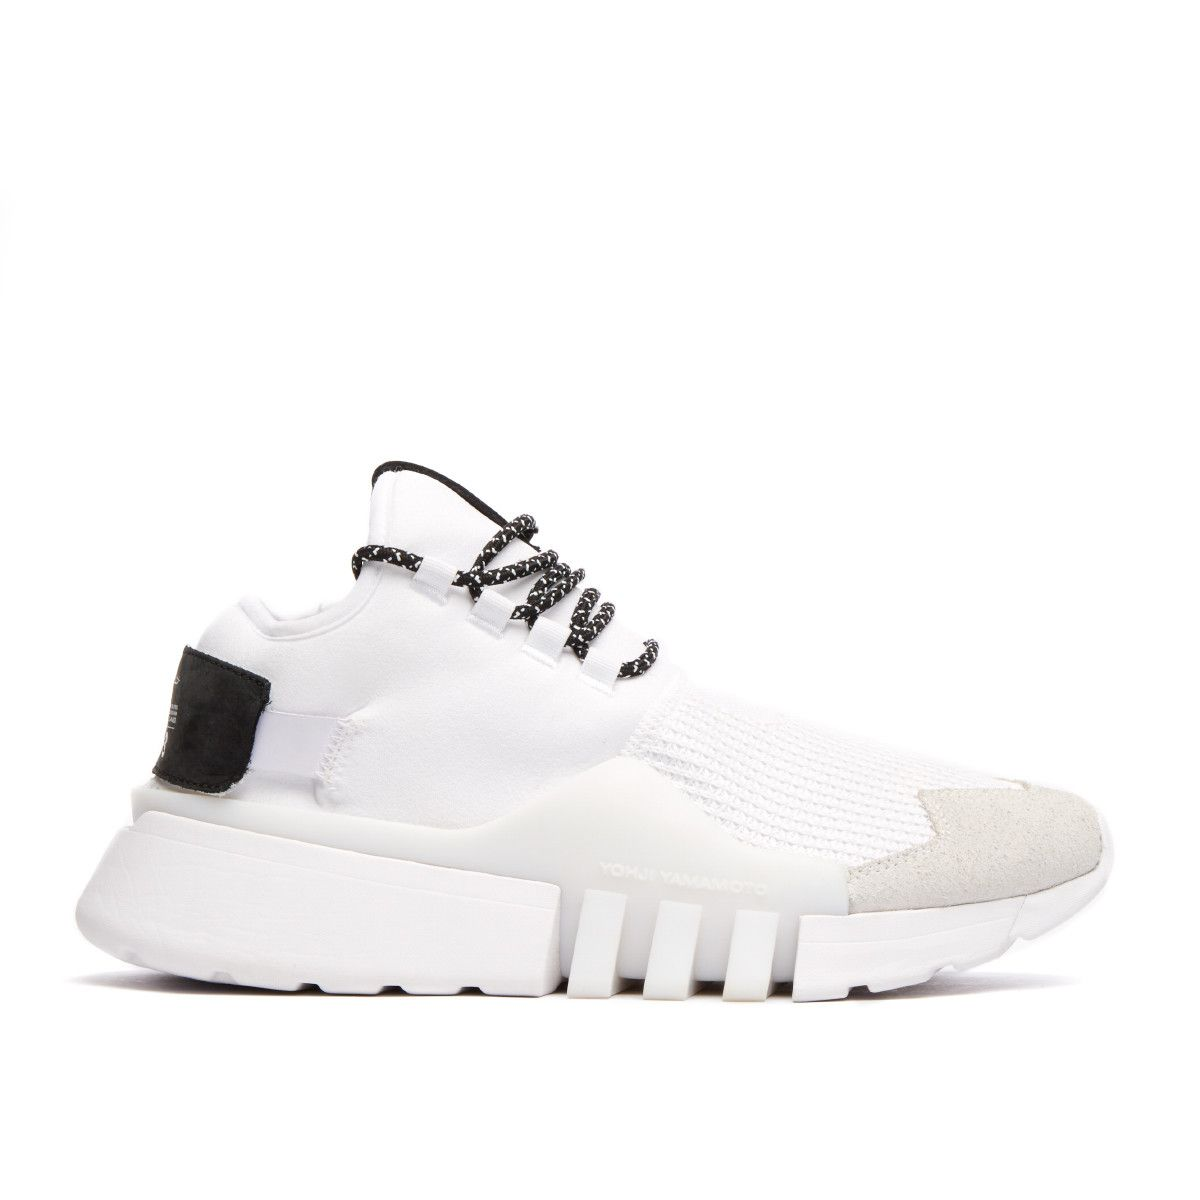 38de6e6e2e6a8 Ayero sneakers from the S S2018 Y-3 by Yohji Yamamoto collection in white